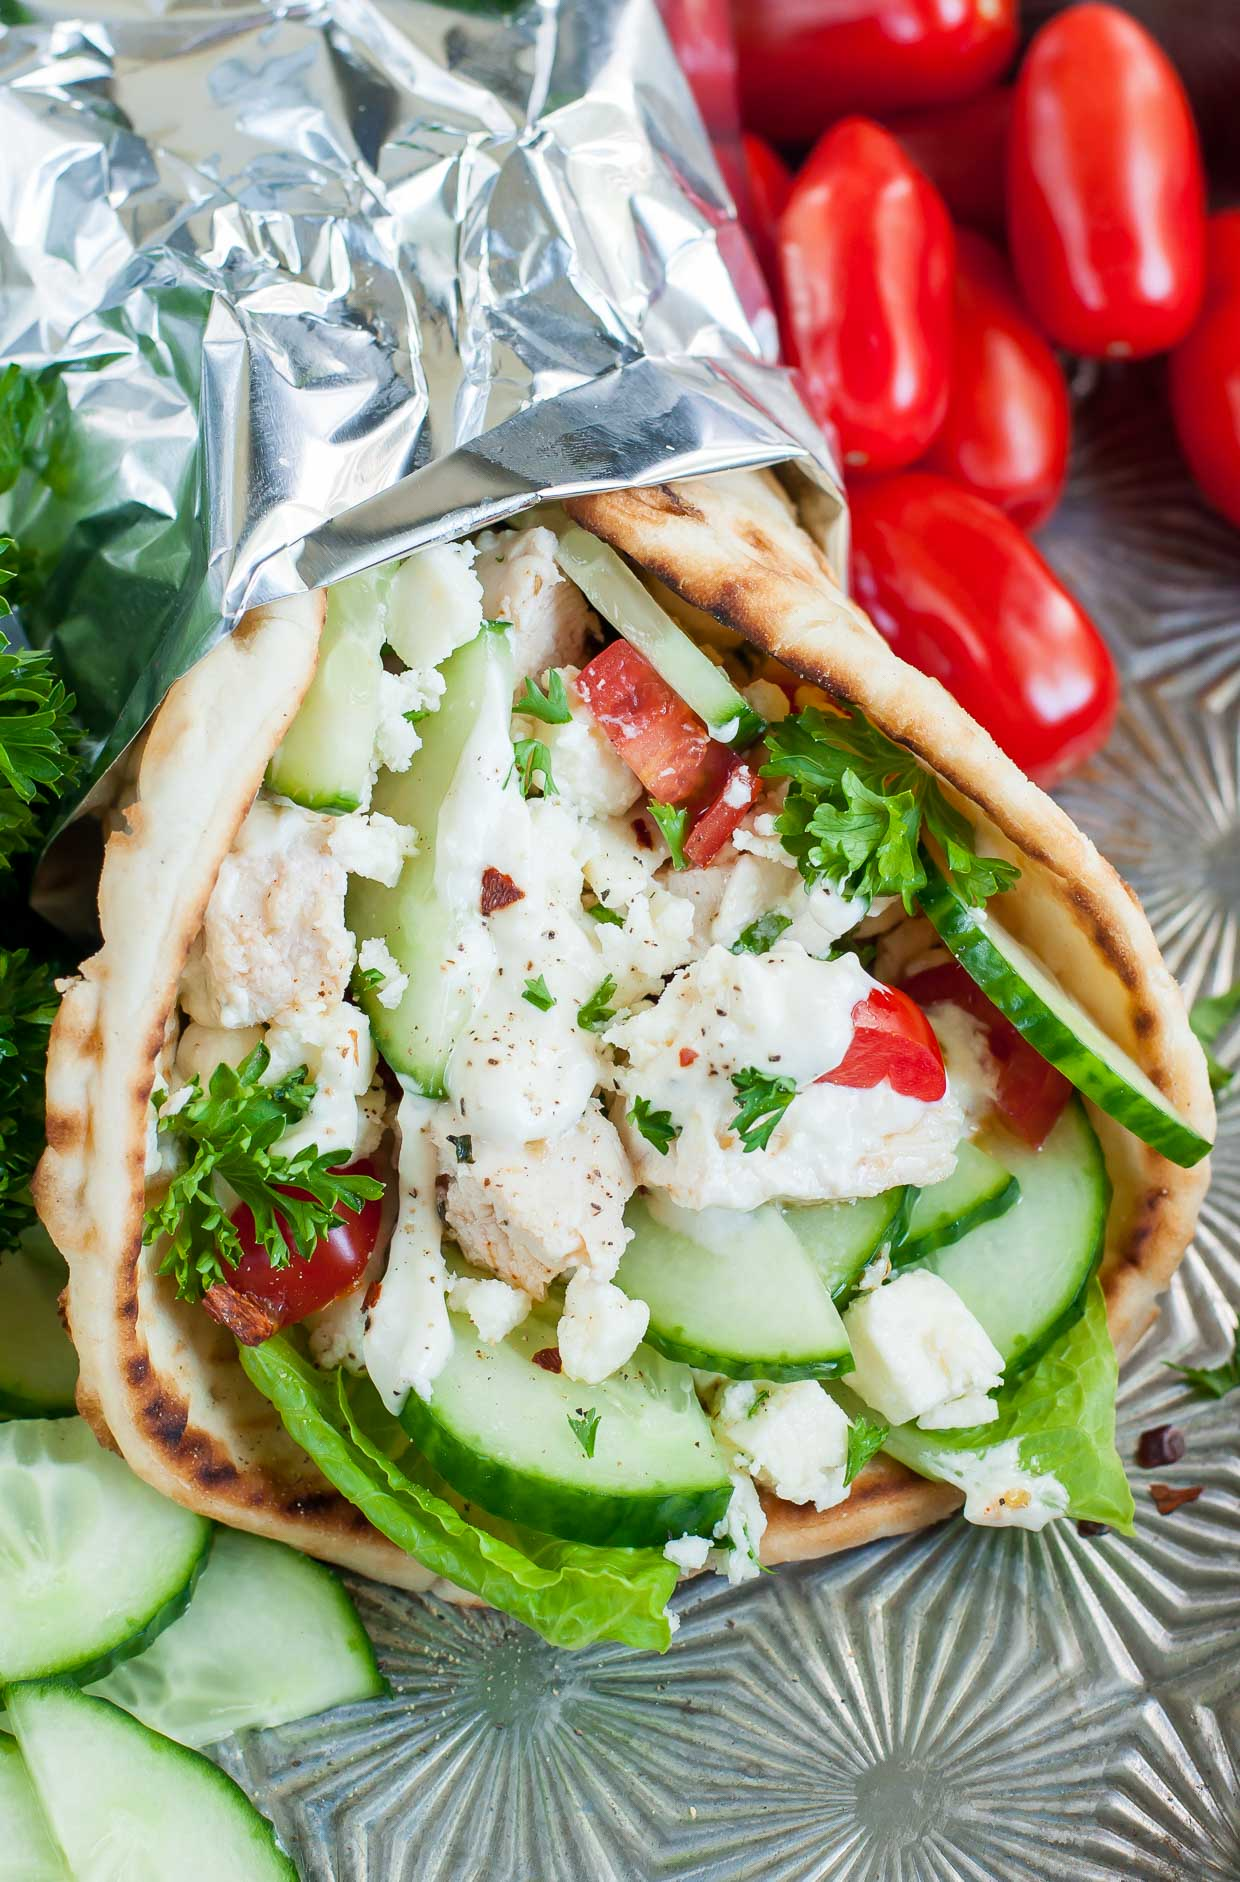 These quick and easy chicken gyros with Greek feta sauce are so super versatile and great for a speedy lunch or easy weeknight dinner. You can use grilled, baked, leftover, or even rotisserie chicken or go veggie and add sautéed onions and peppers to the mix!